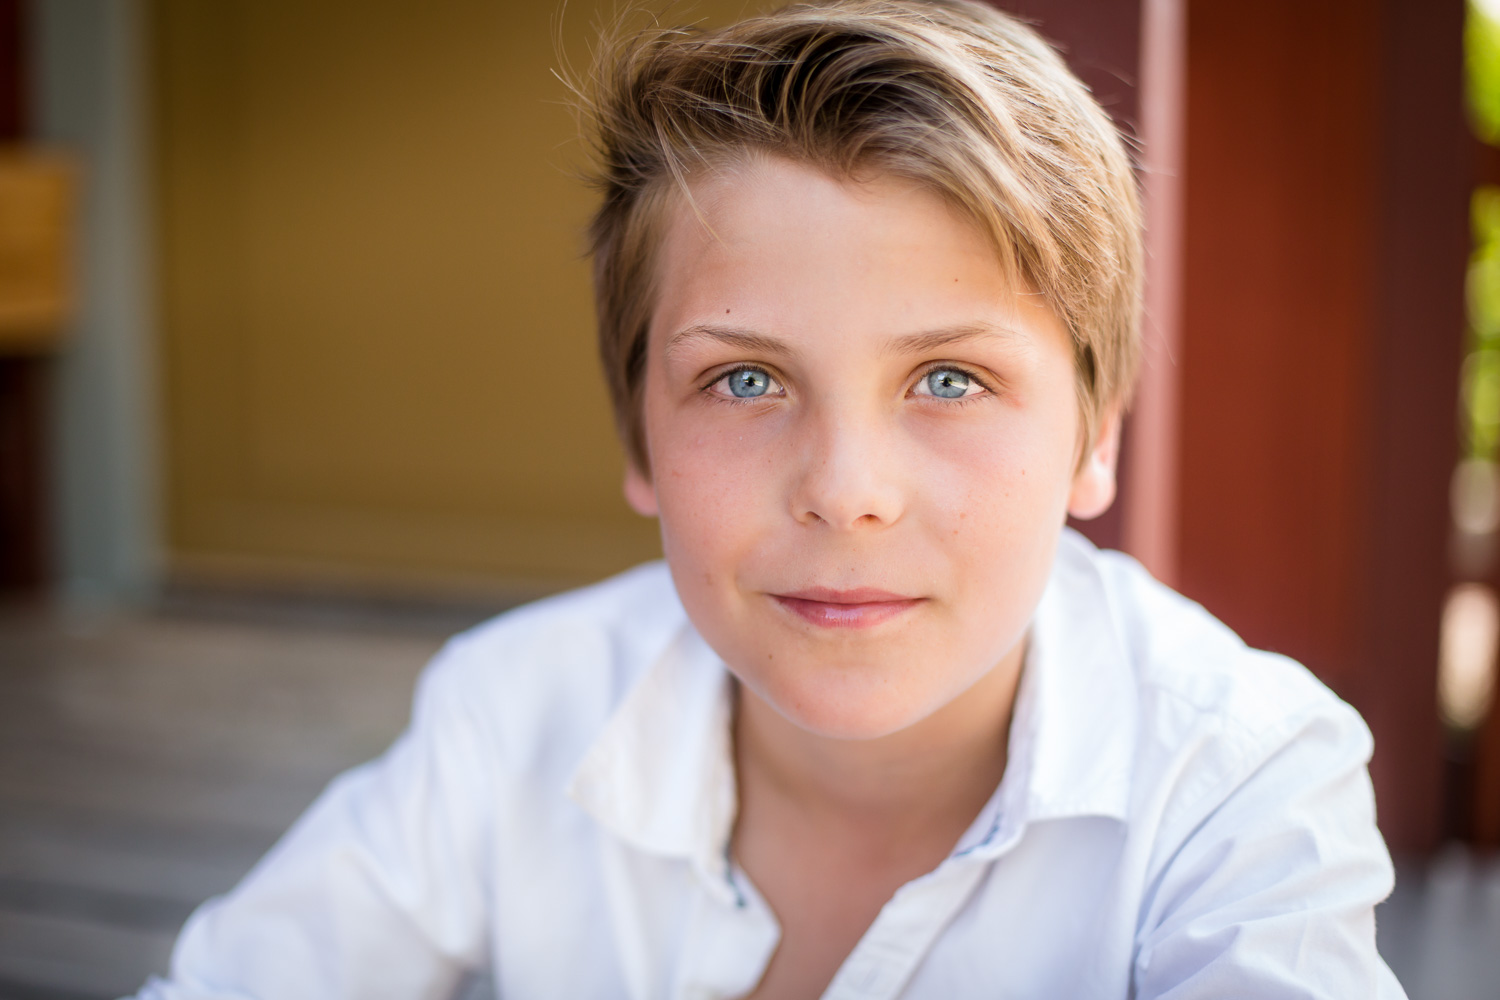 A-close-up-photo-of-a-young-boy-by-Stockholm barnfotograf-Sandra-Jolly.jpg